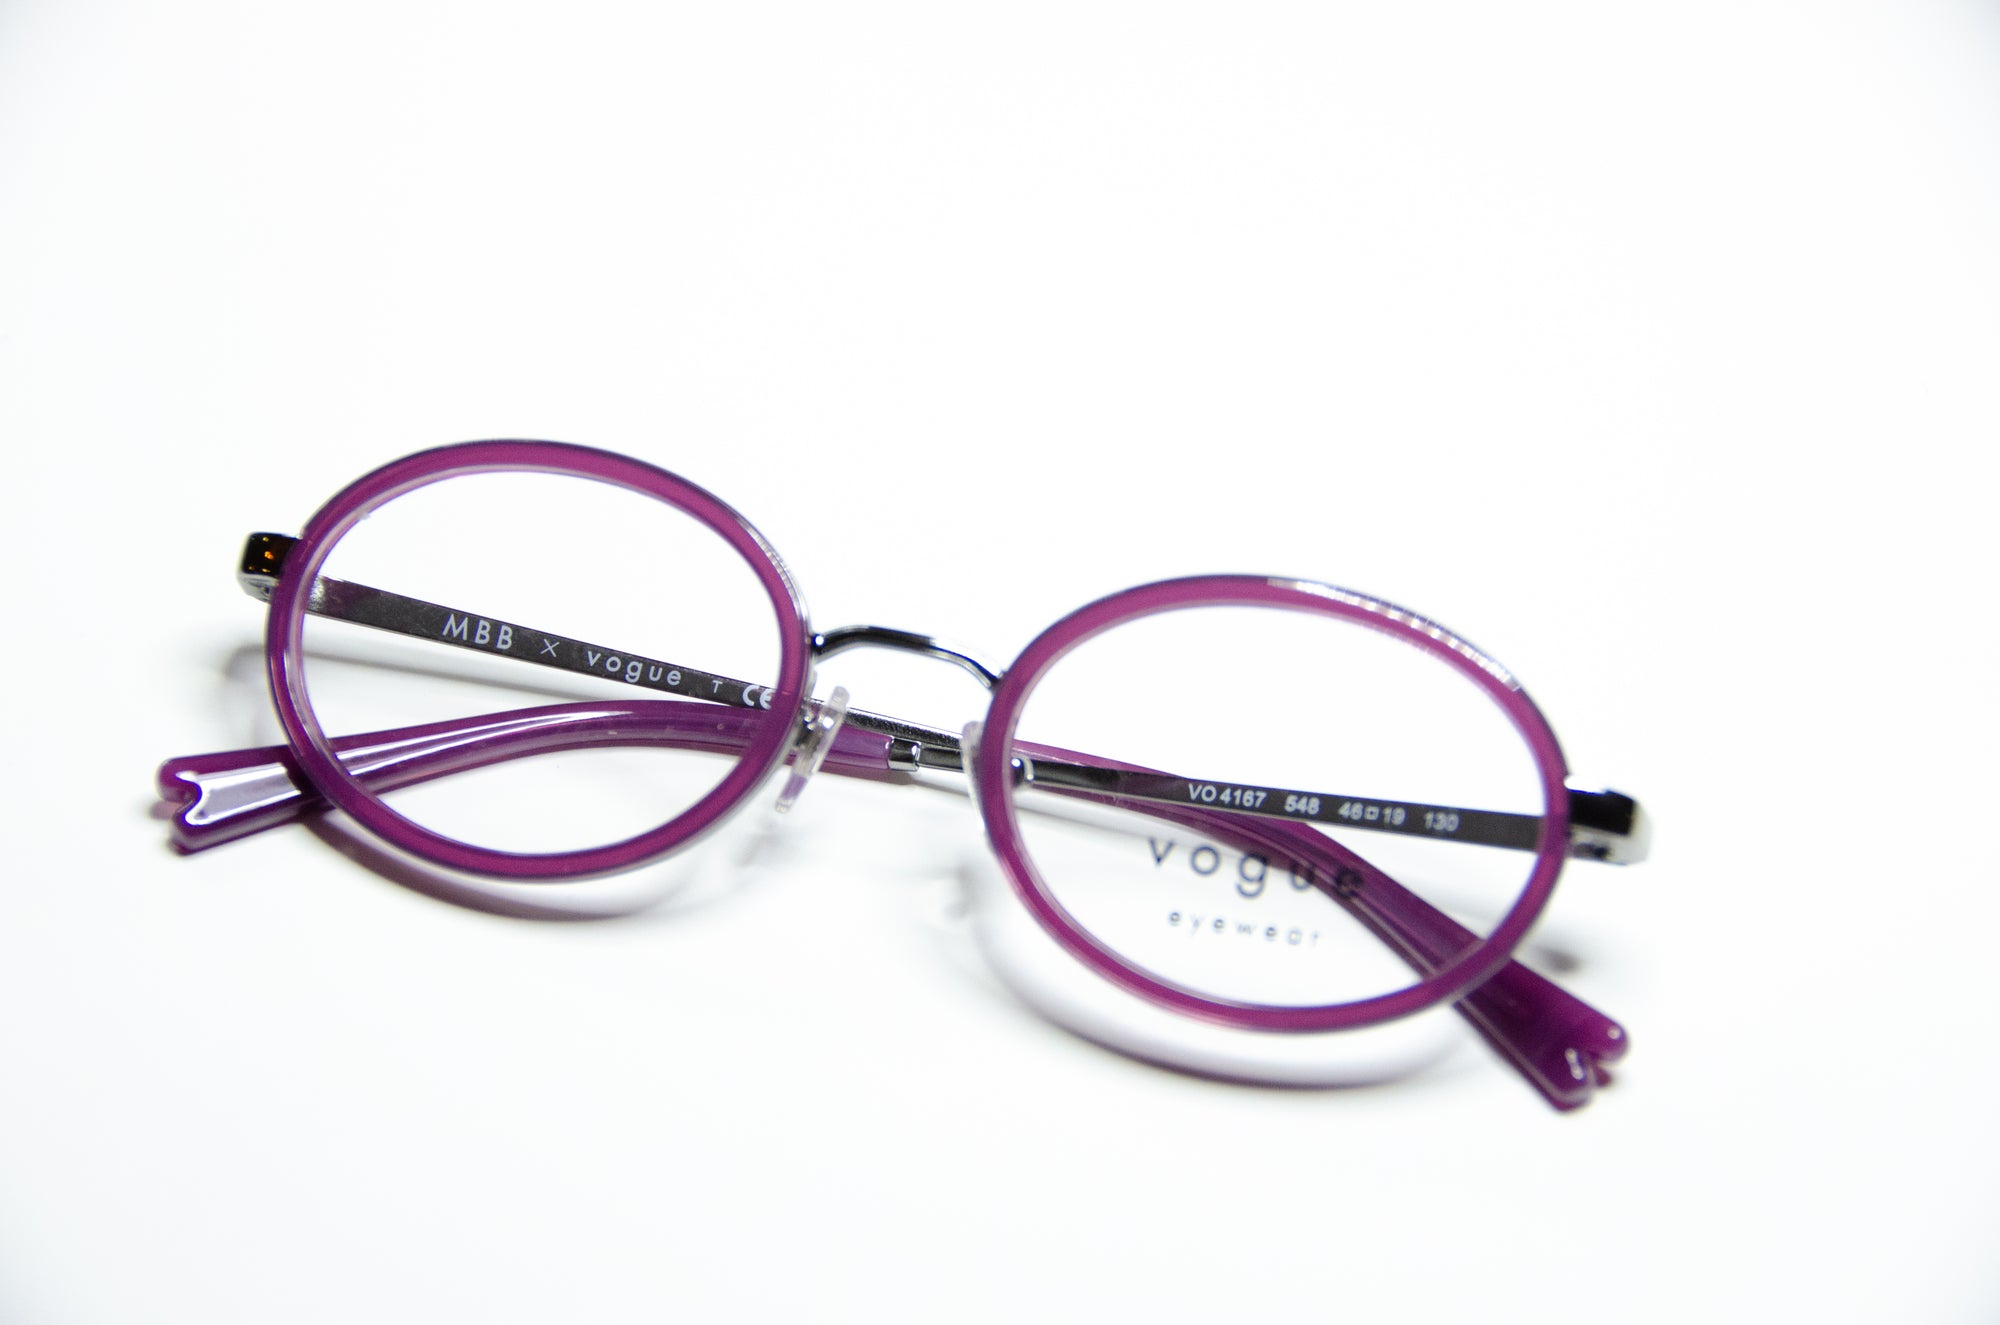 Vogue Kids - Optique Medicis